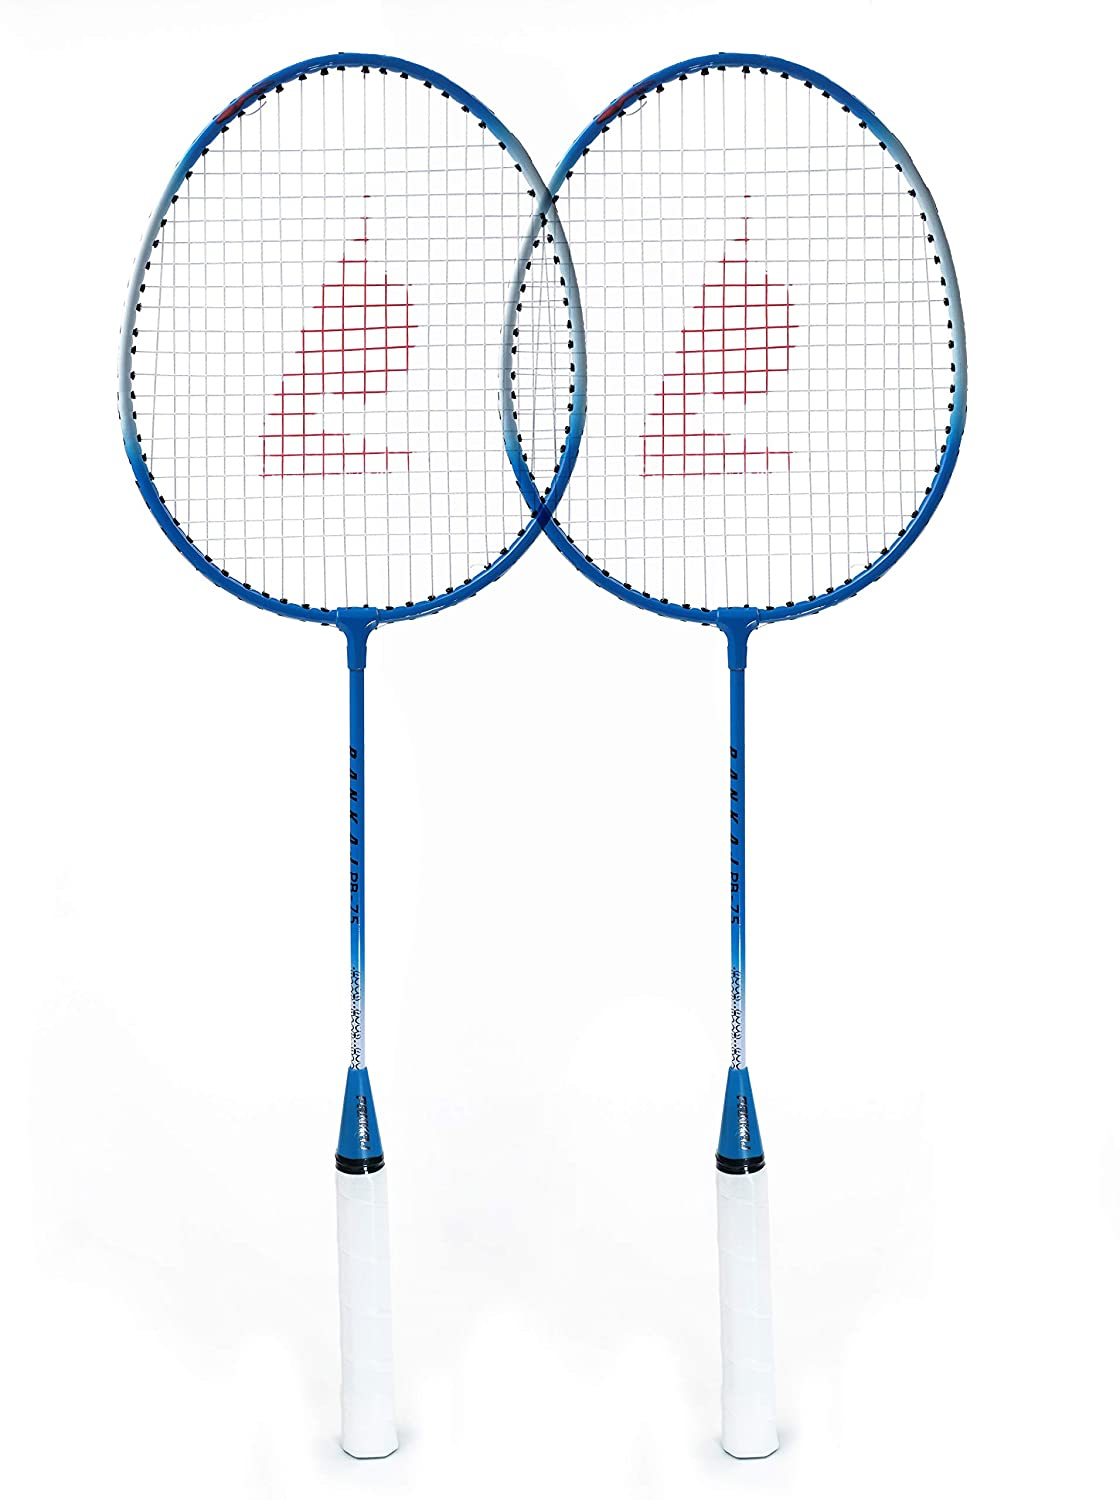 Badminton Racket - PB 75 - Pack for 2